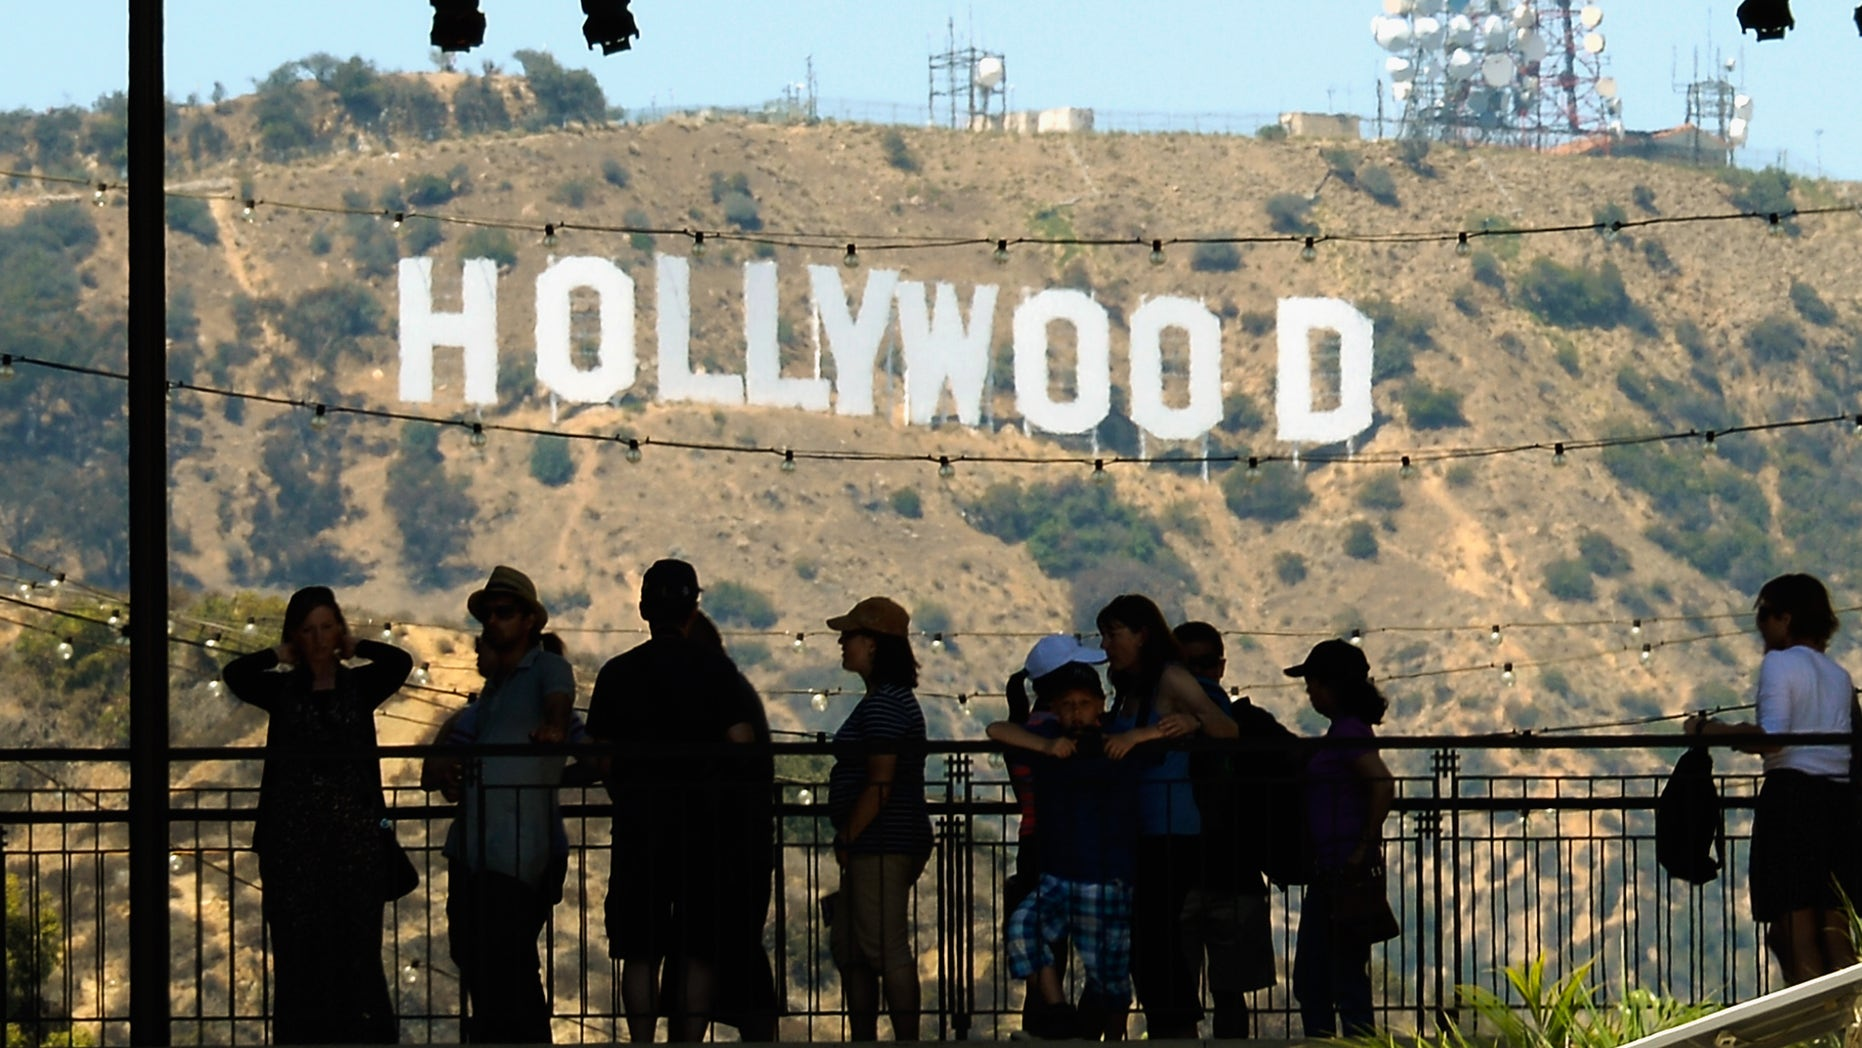 LOS ANGELES, CA - JUNE 28:  Tourists are slihouted against the distroted Hollywood sign from rising heat waves during a major heat wave in Southern California on June 28, 2013 in Los Angeles, California. Temperatures are expected to be in the triple digits in most areas of Southern California. According to the national Weather Service, the heat wave is expected to linger into early next week prompting heat advisories and opening of cooling centers.  (Photo by Kevork Djansezian/Getty Images)